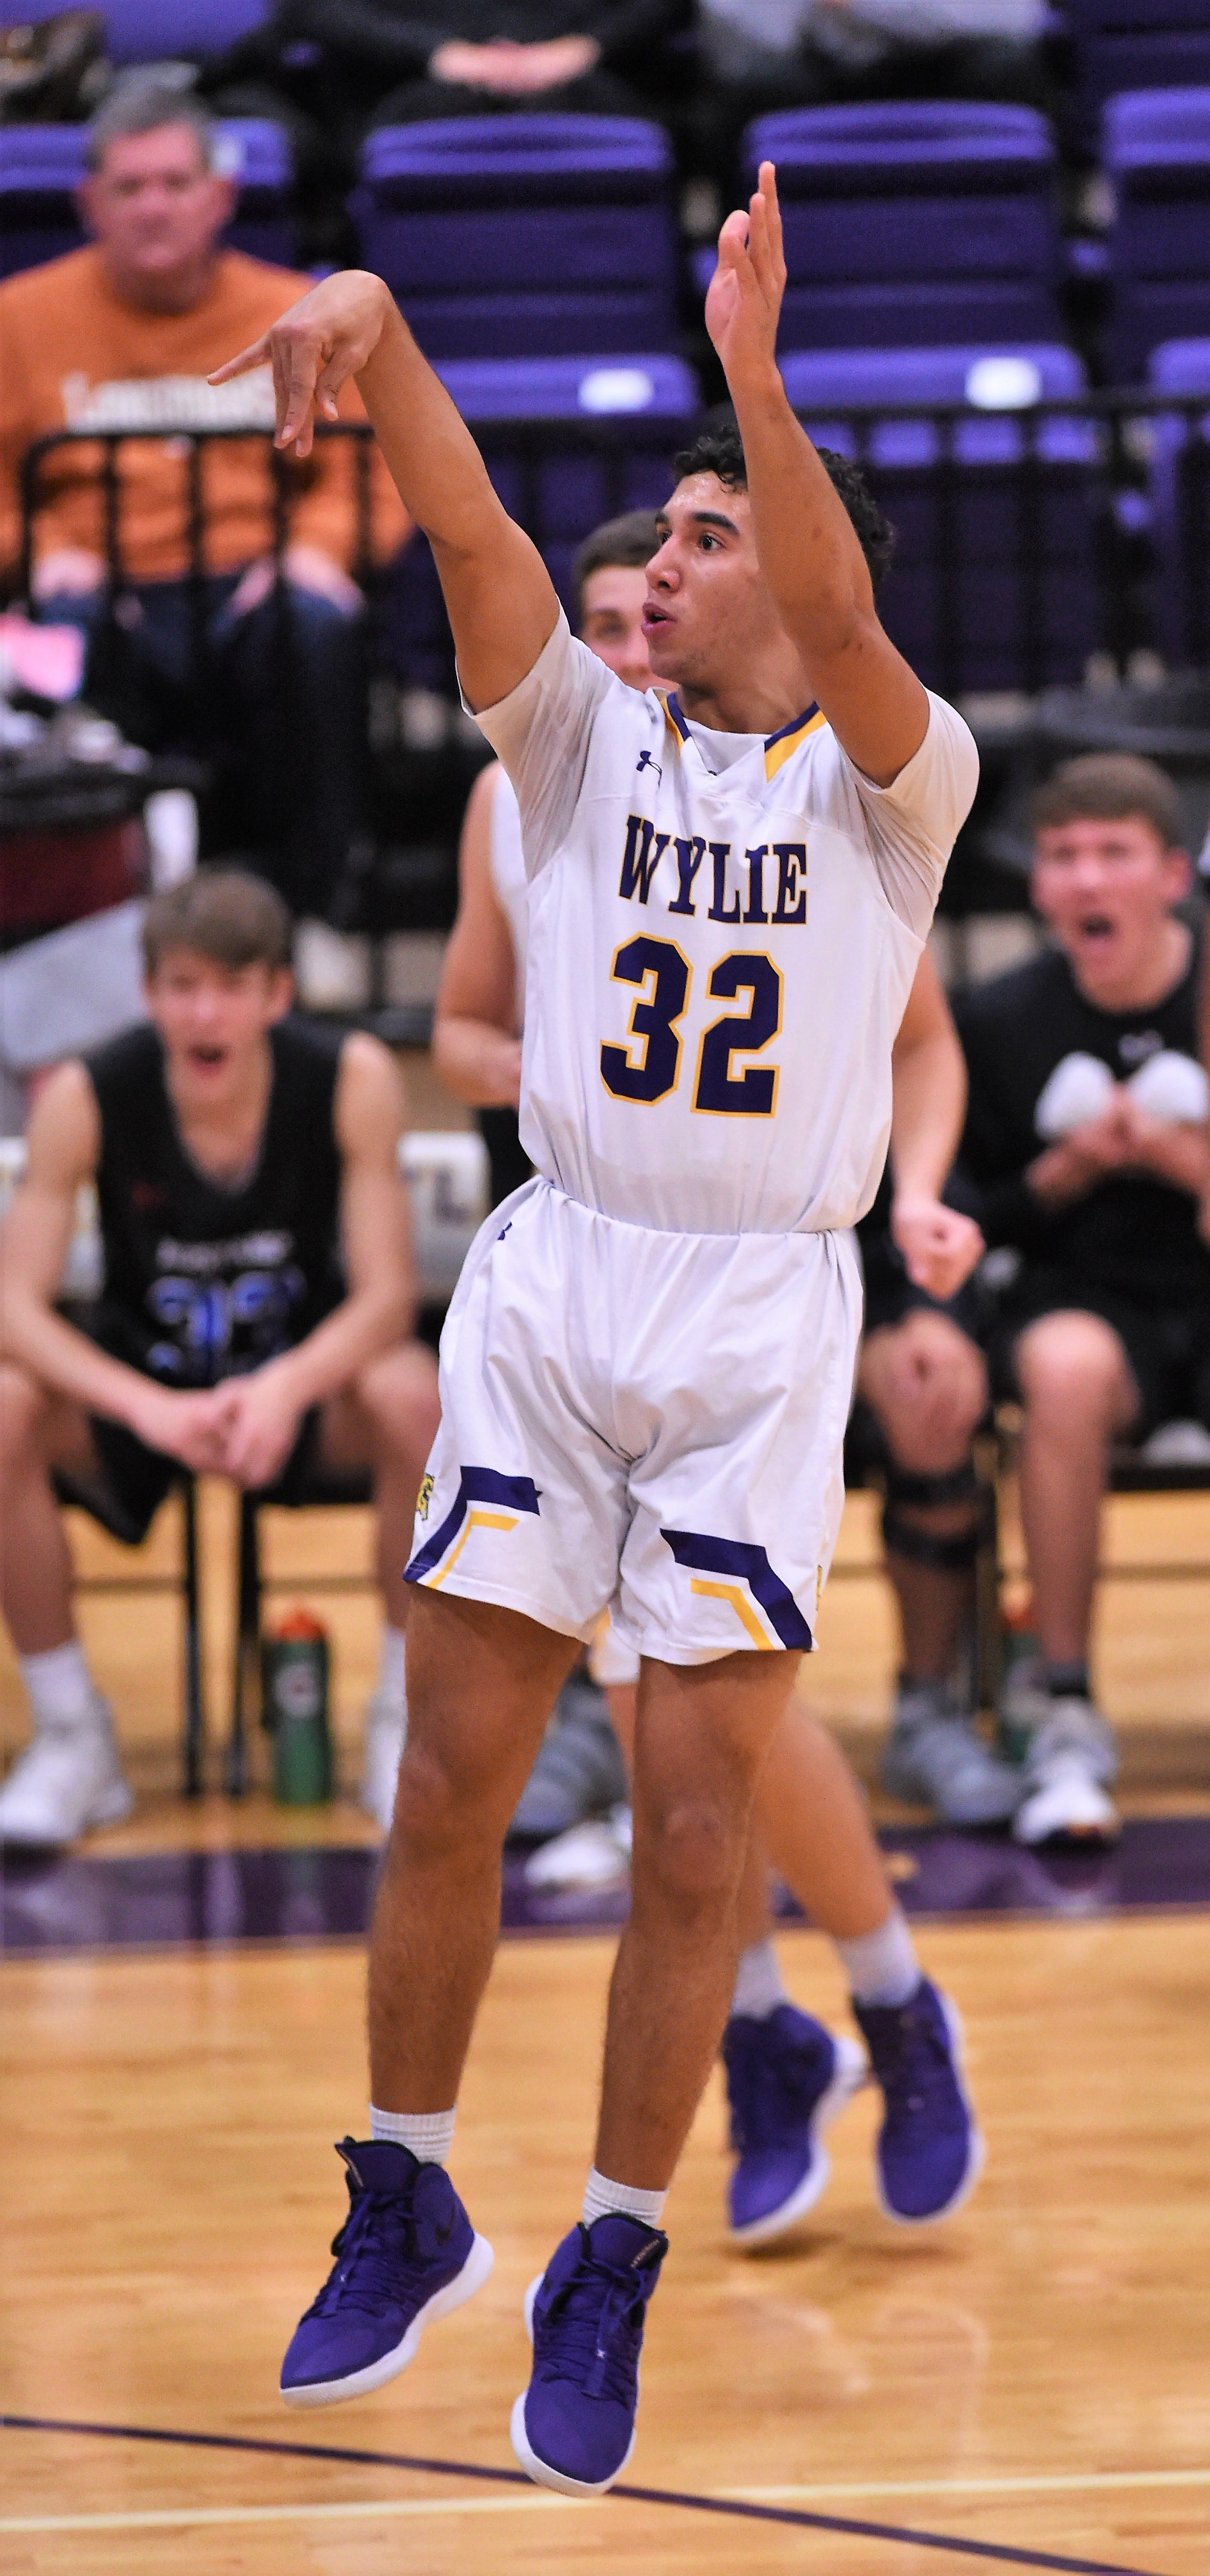 Wylie's Payton Brooks (32) follows through on a shot against Midland Christian in the final of the Catclaw Classic at Bulldog Gym on Saturday, Dec. 8, 2018. The Bulldogs return to action Tuesday against Abilene High.